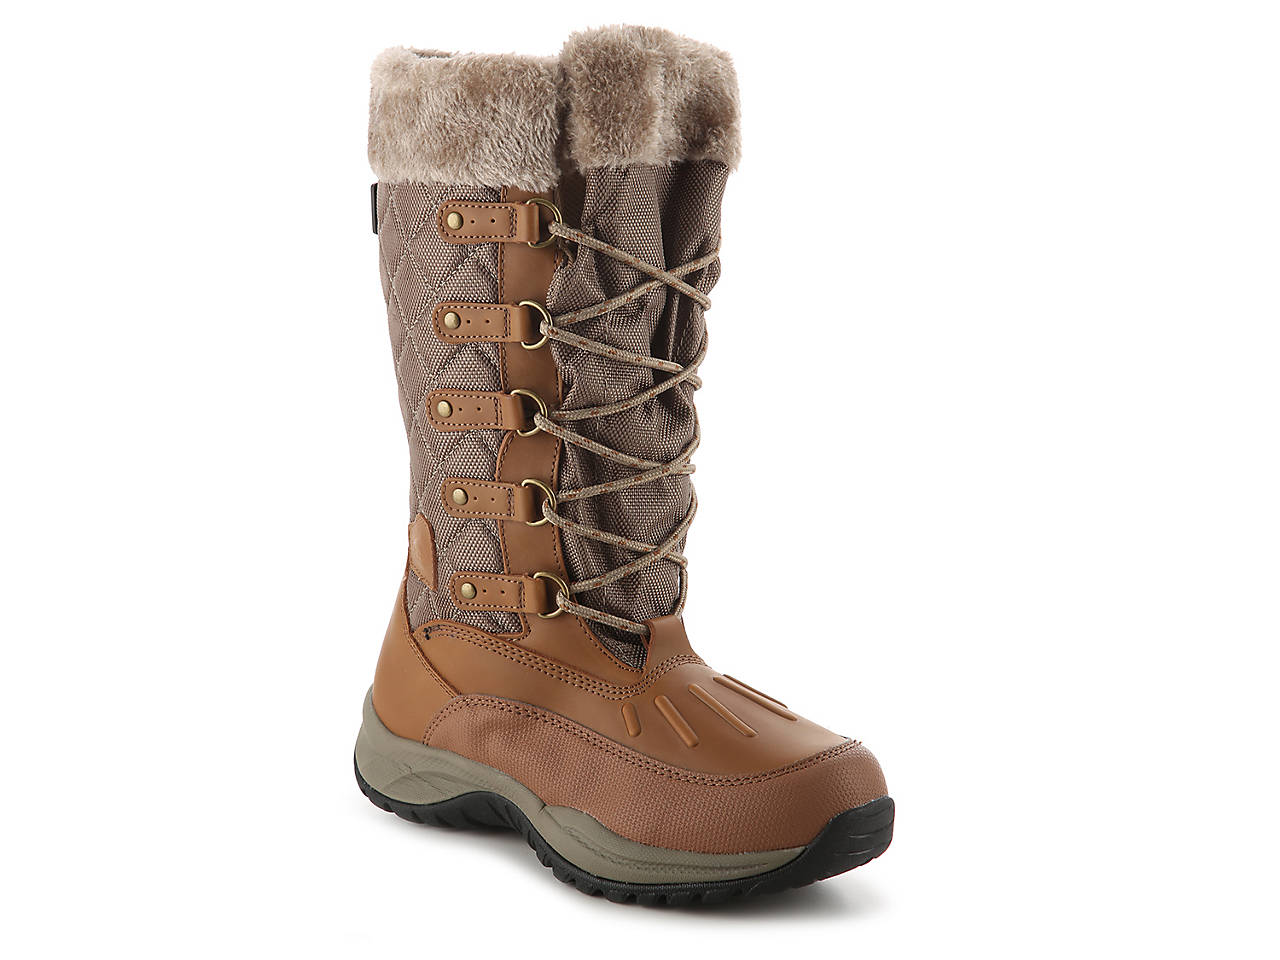 Pacific Mountain Whiteout ... Women's Winter Boots latest for sale fake cheap online brand new unisex online UPokXp